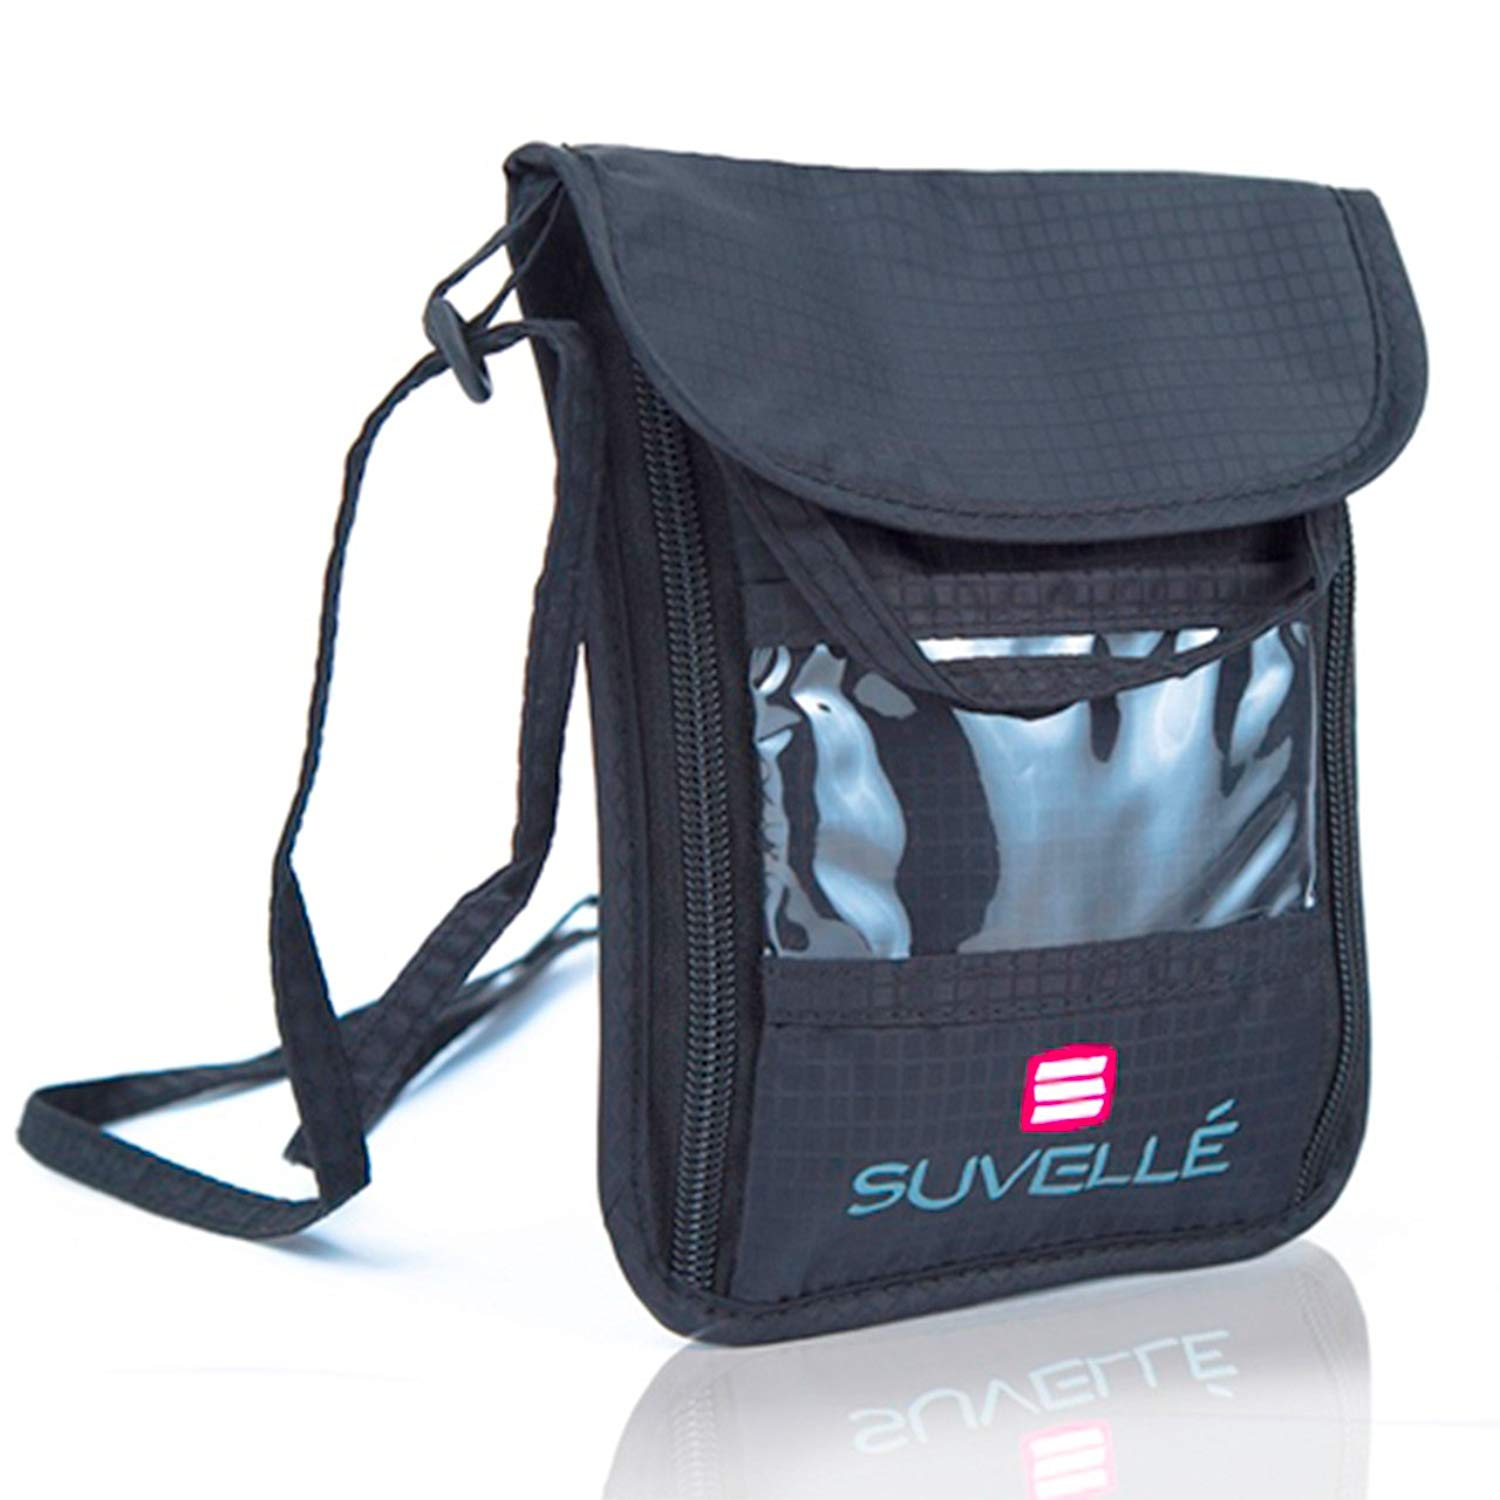 Suvelle RFID Blocking Travel Neck Pouch Organizer Wallet Passport Holder